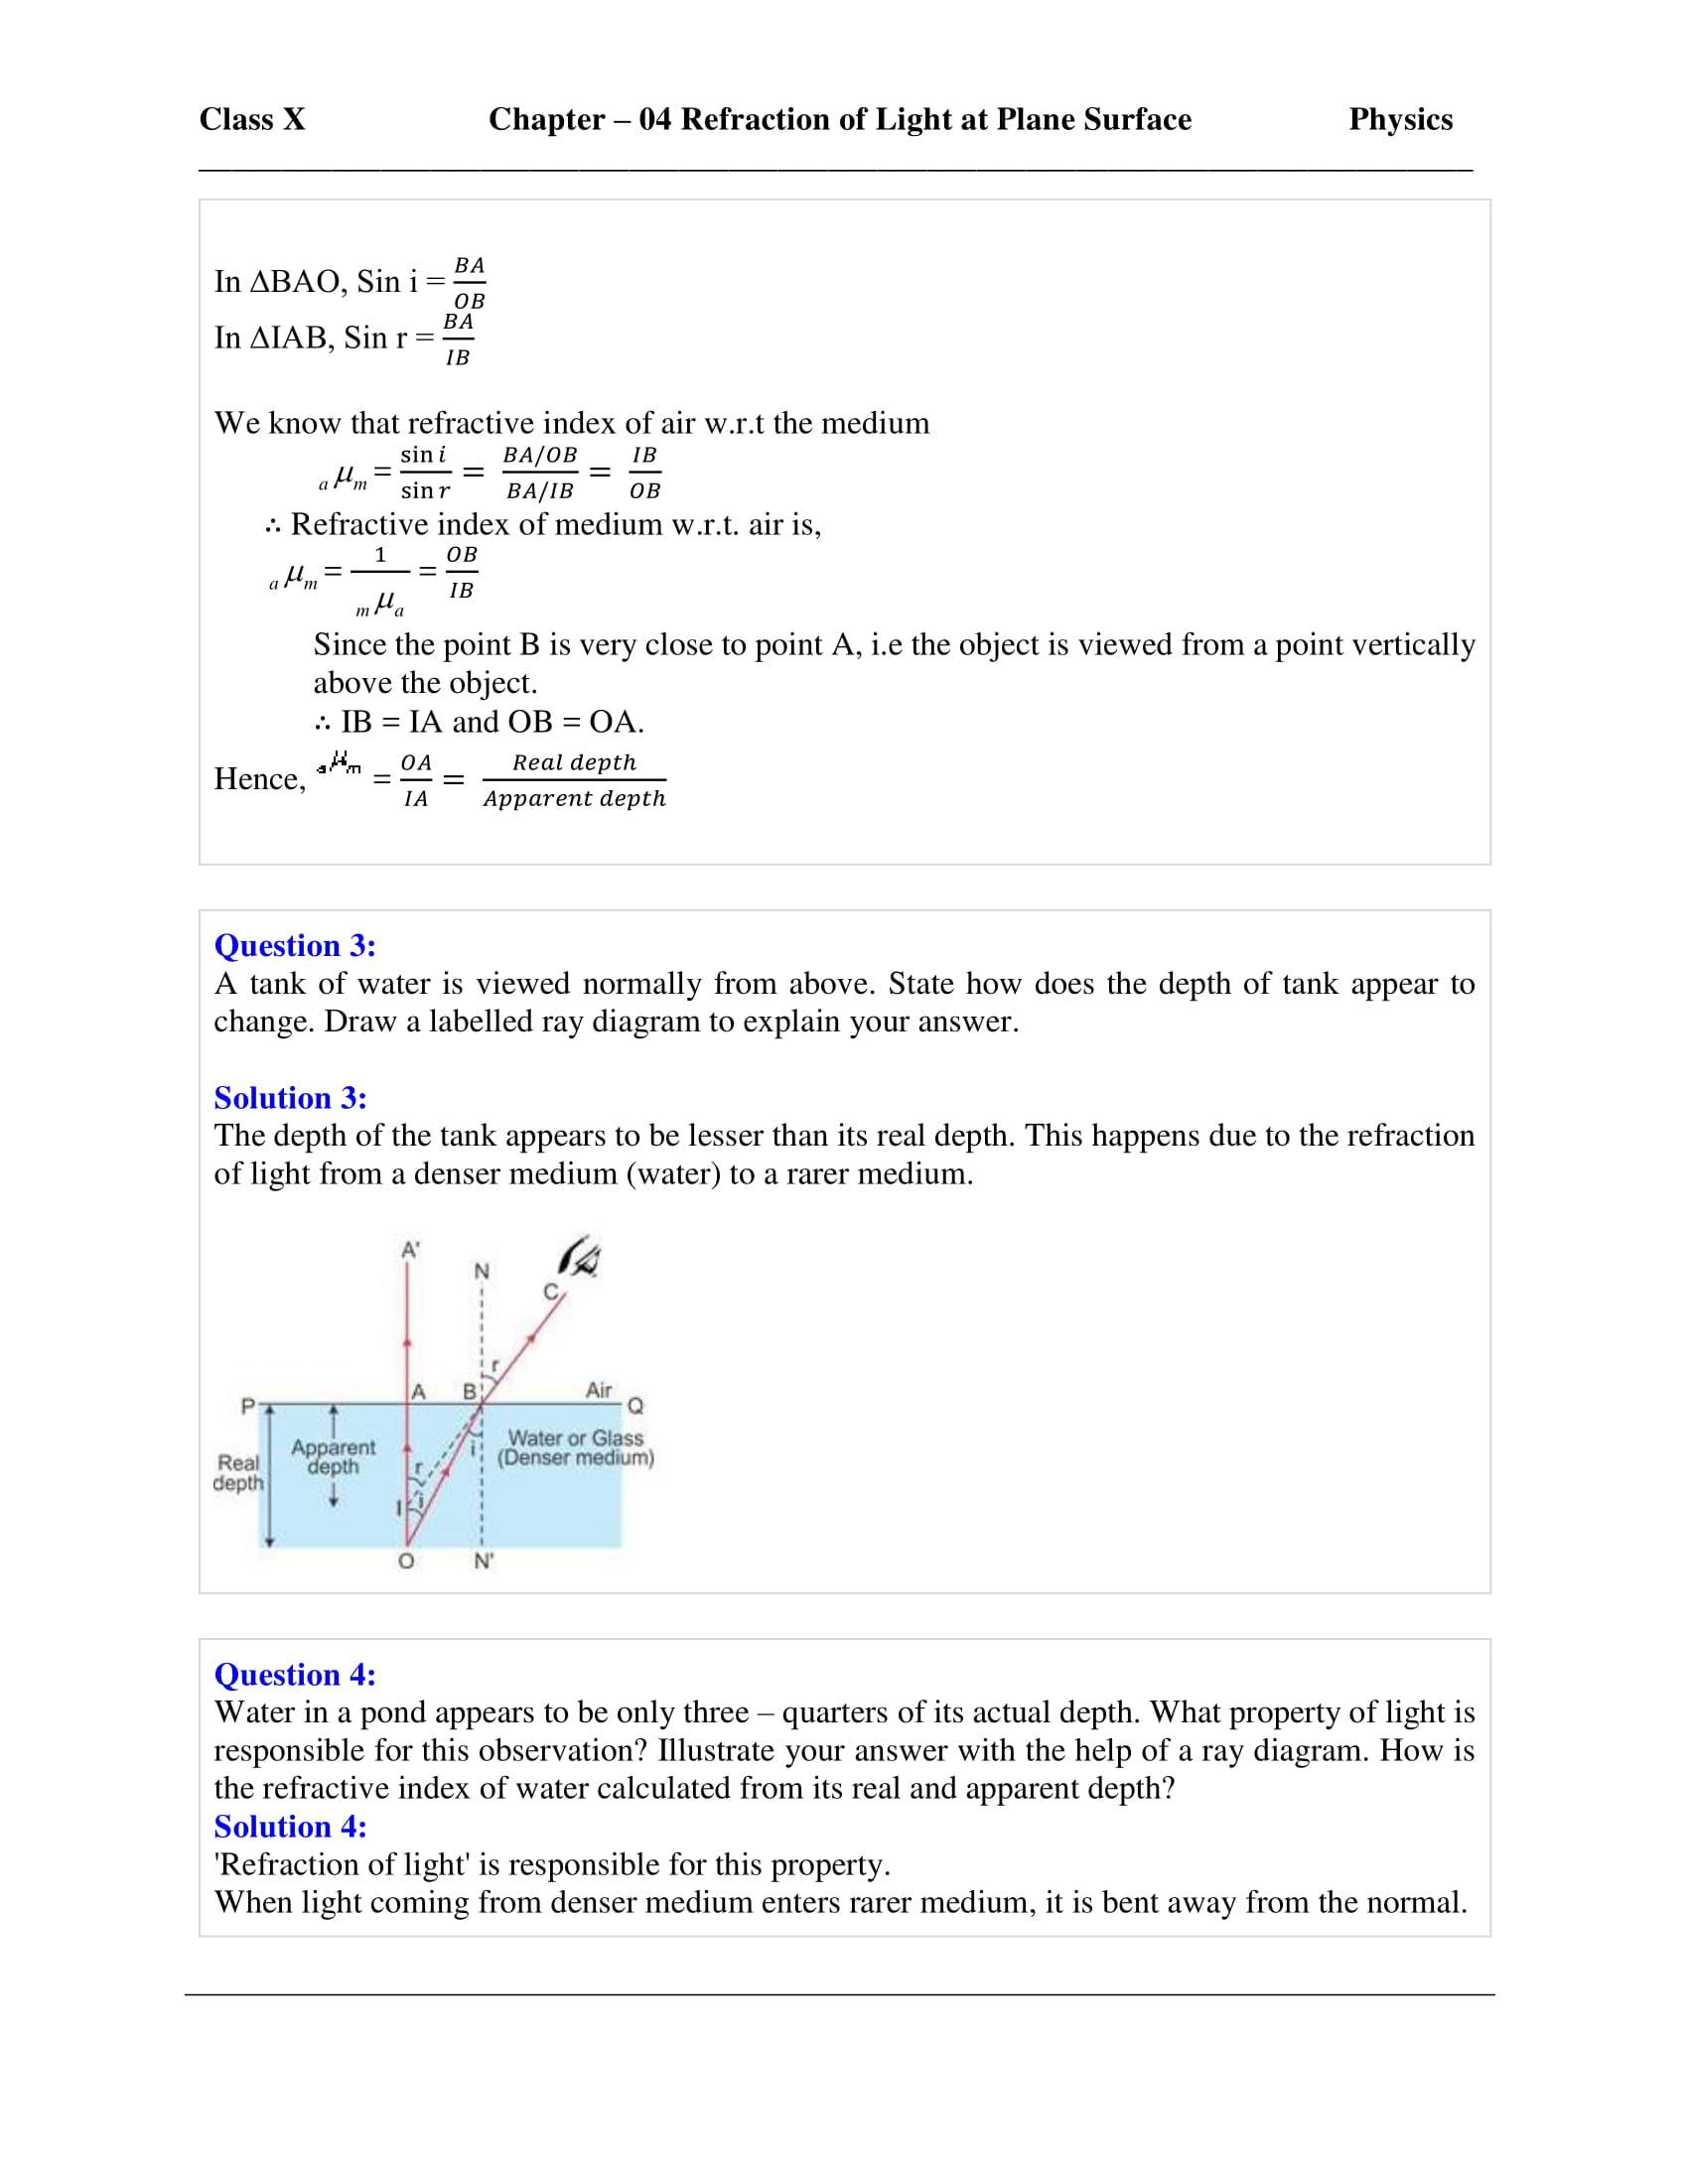 icse-selina-physics-solutions-class-10-chapter-4-refraction-of-light-at-plane-surfaces-23